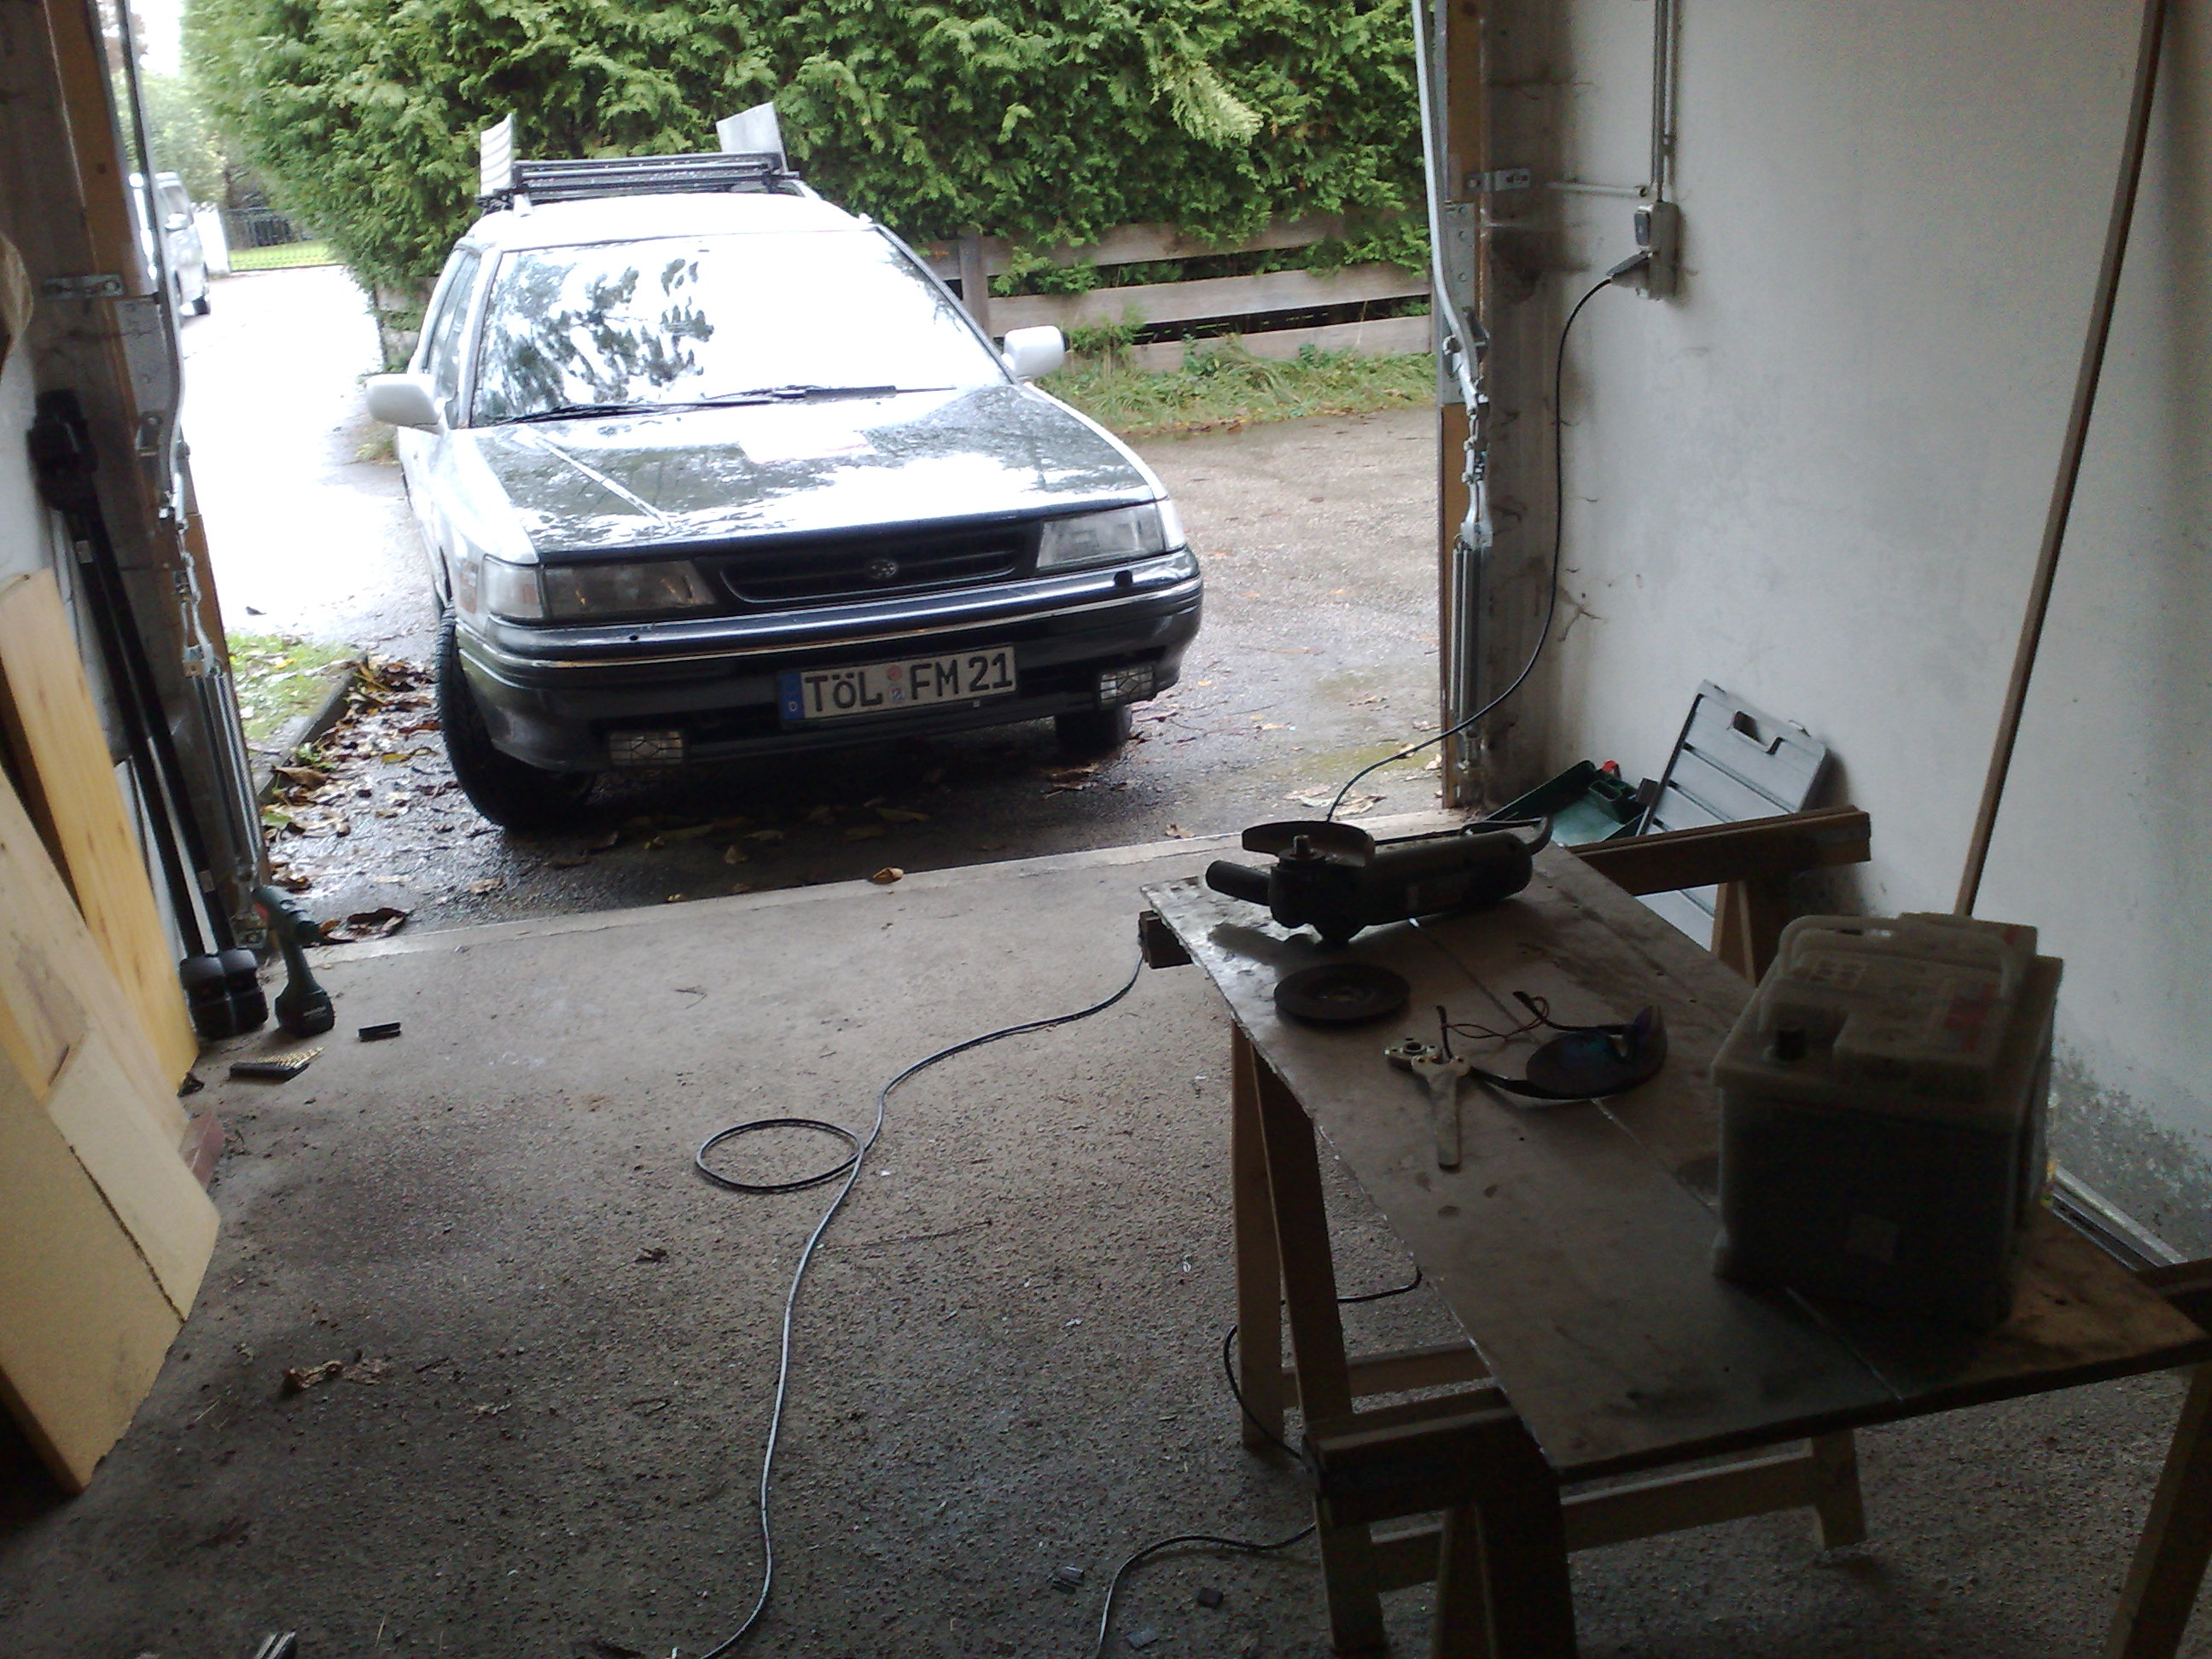 Flexen in der Garage